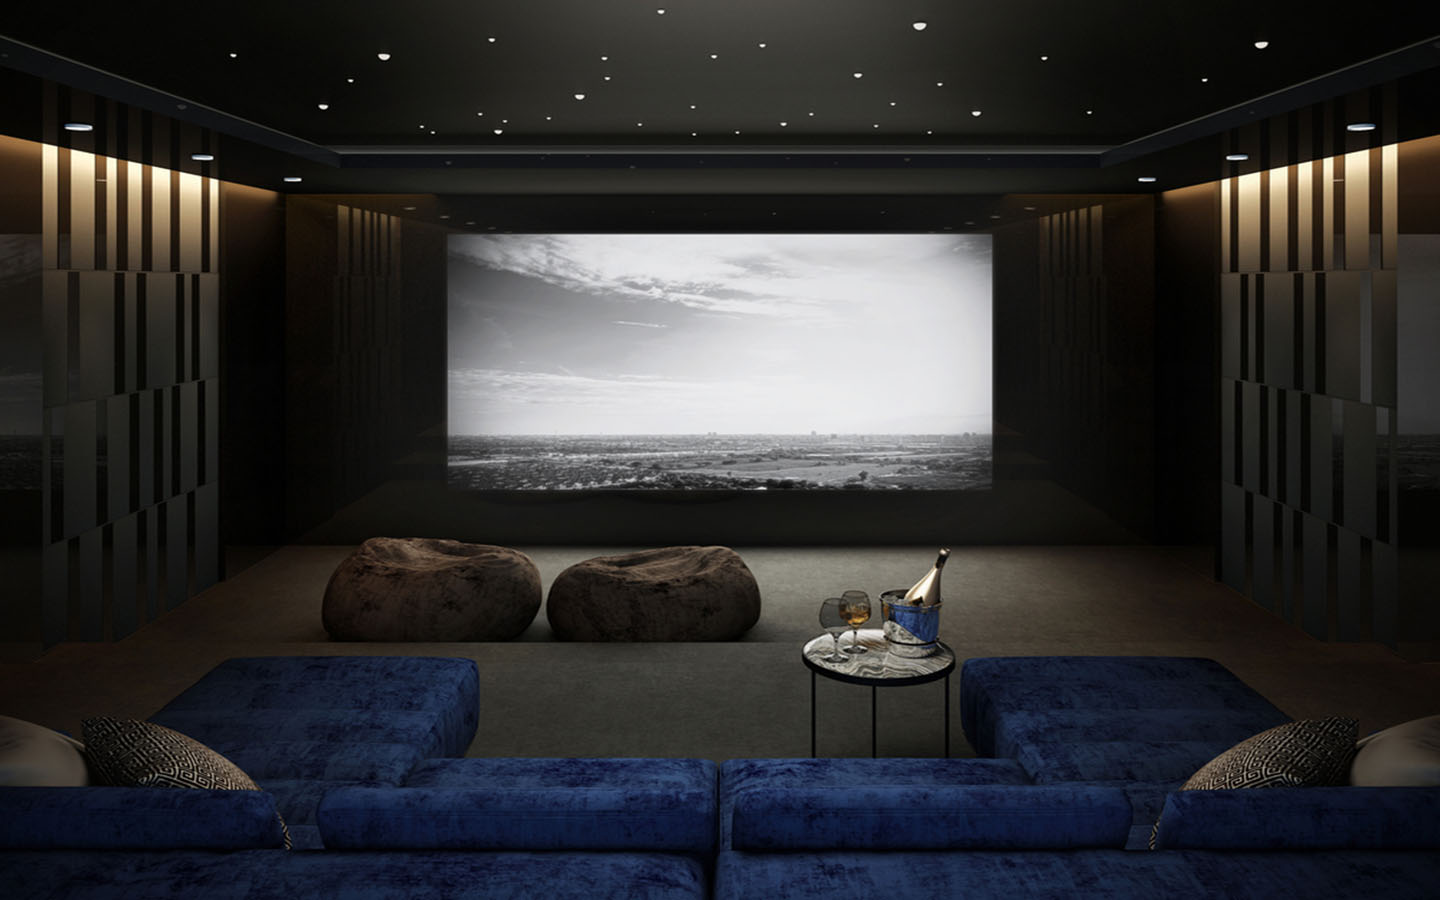 Home theatre room ideas for basement